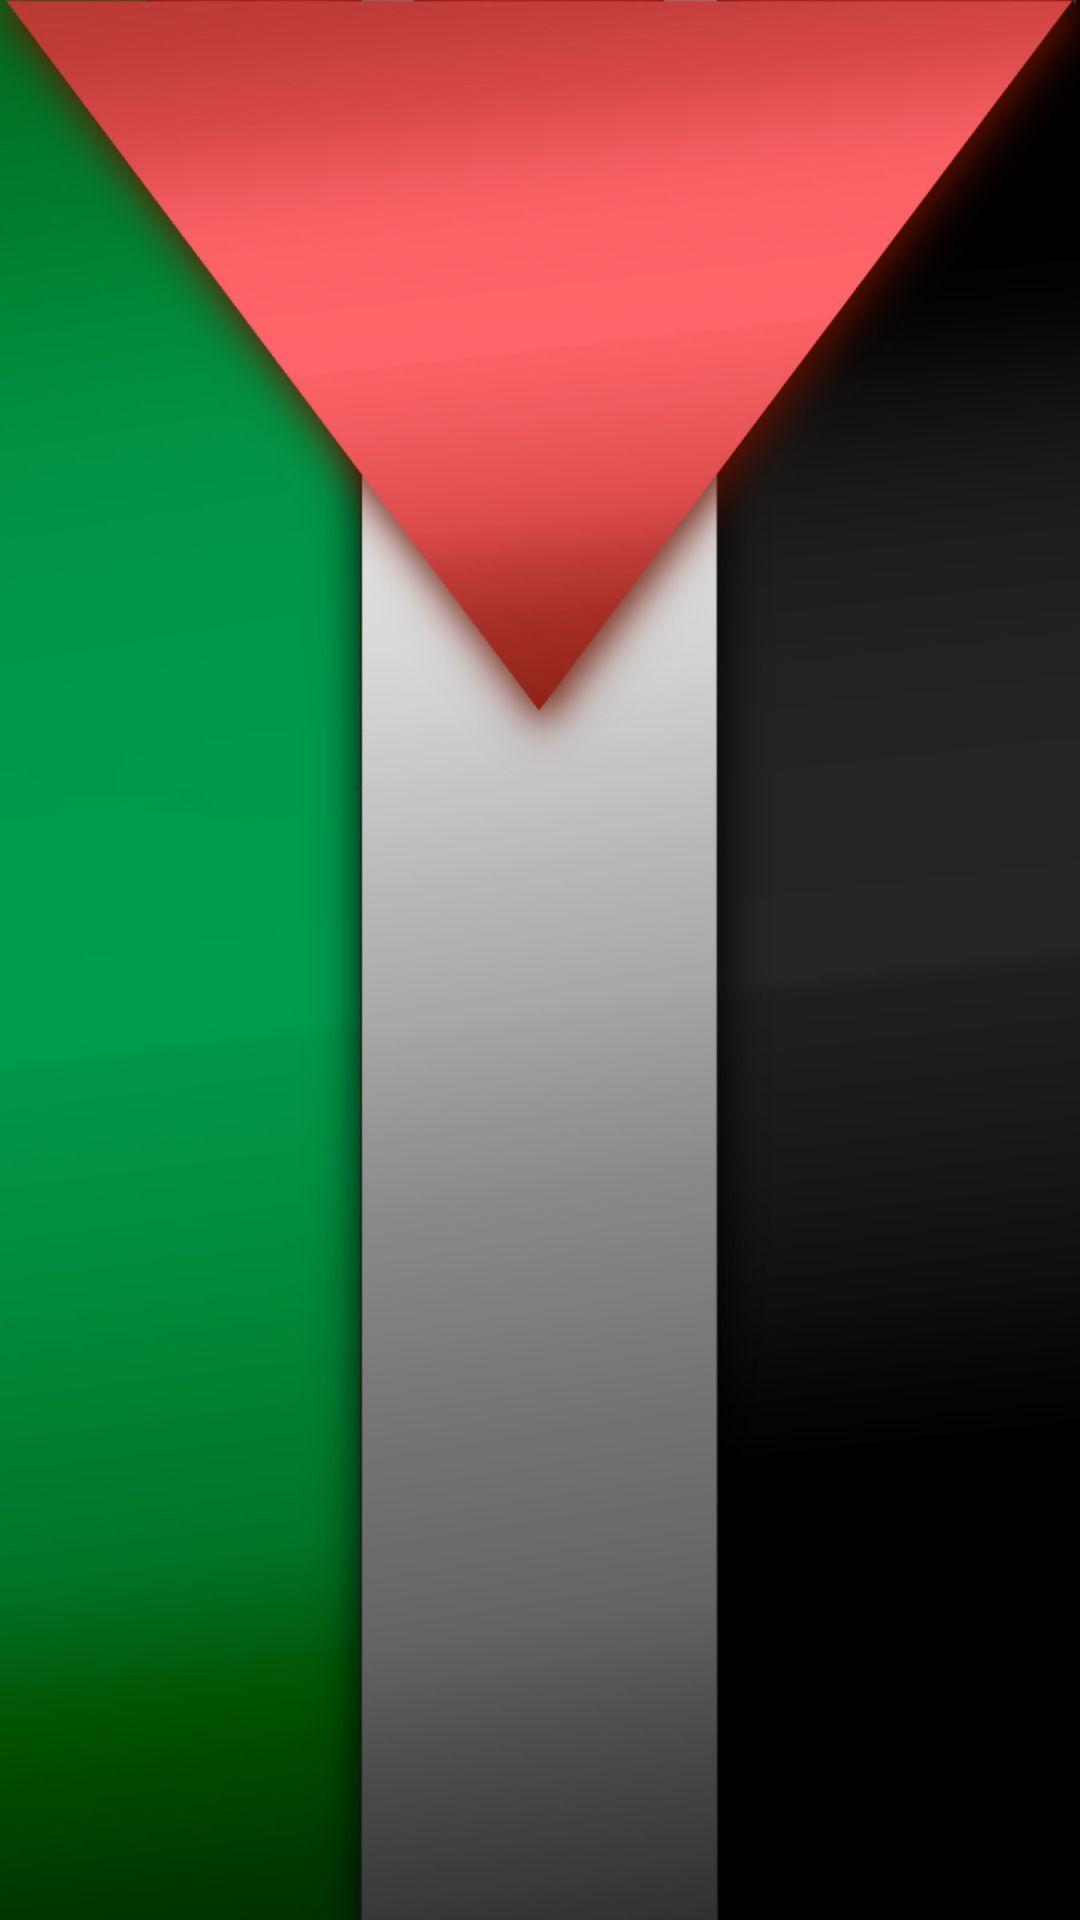 Palestinian flag iphone 6 hd photos